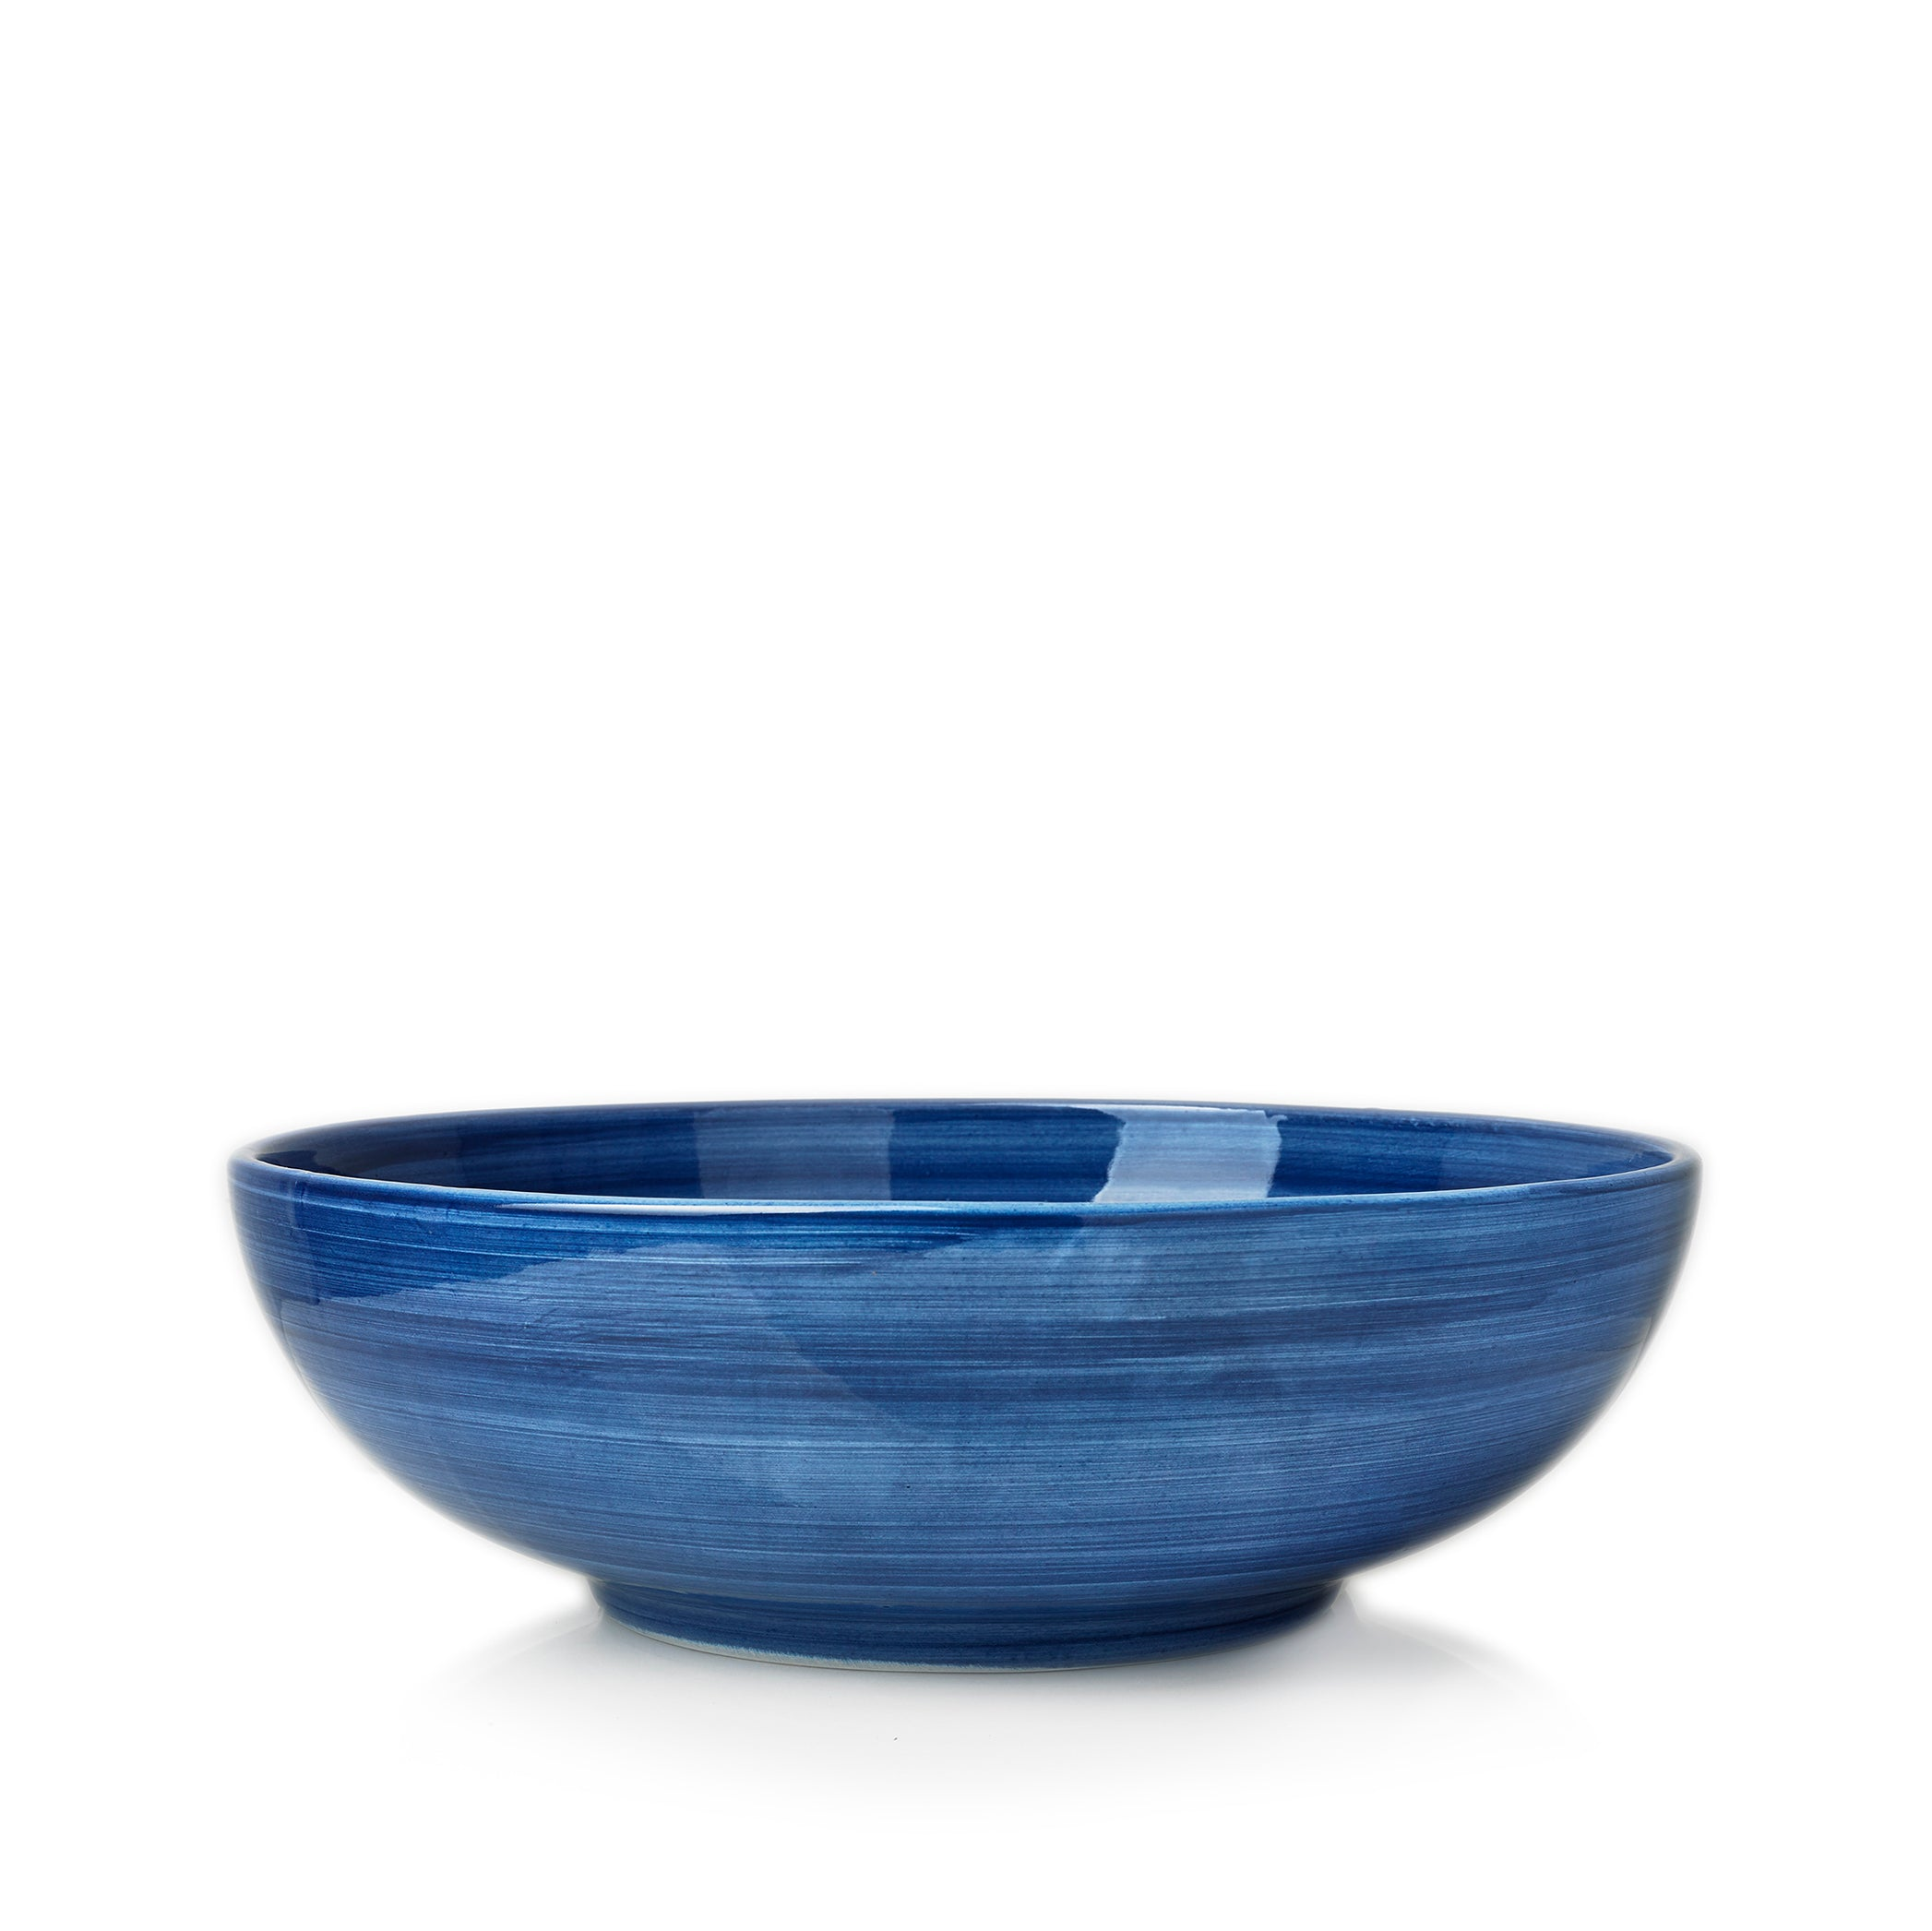 "S&B ""La Couronne"" 25cm Ceramic Serving Bowl in Blue"